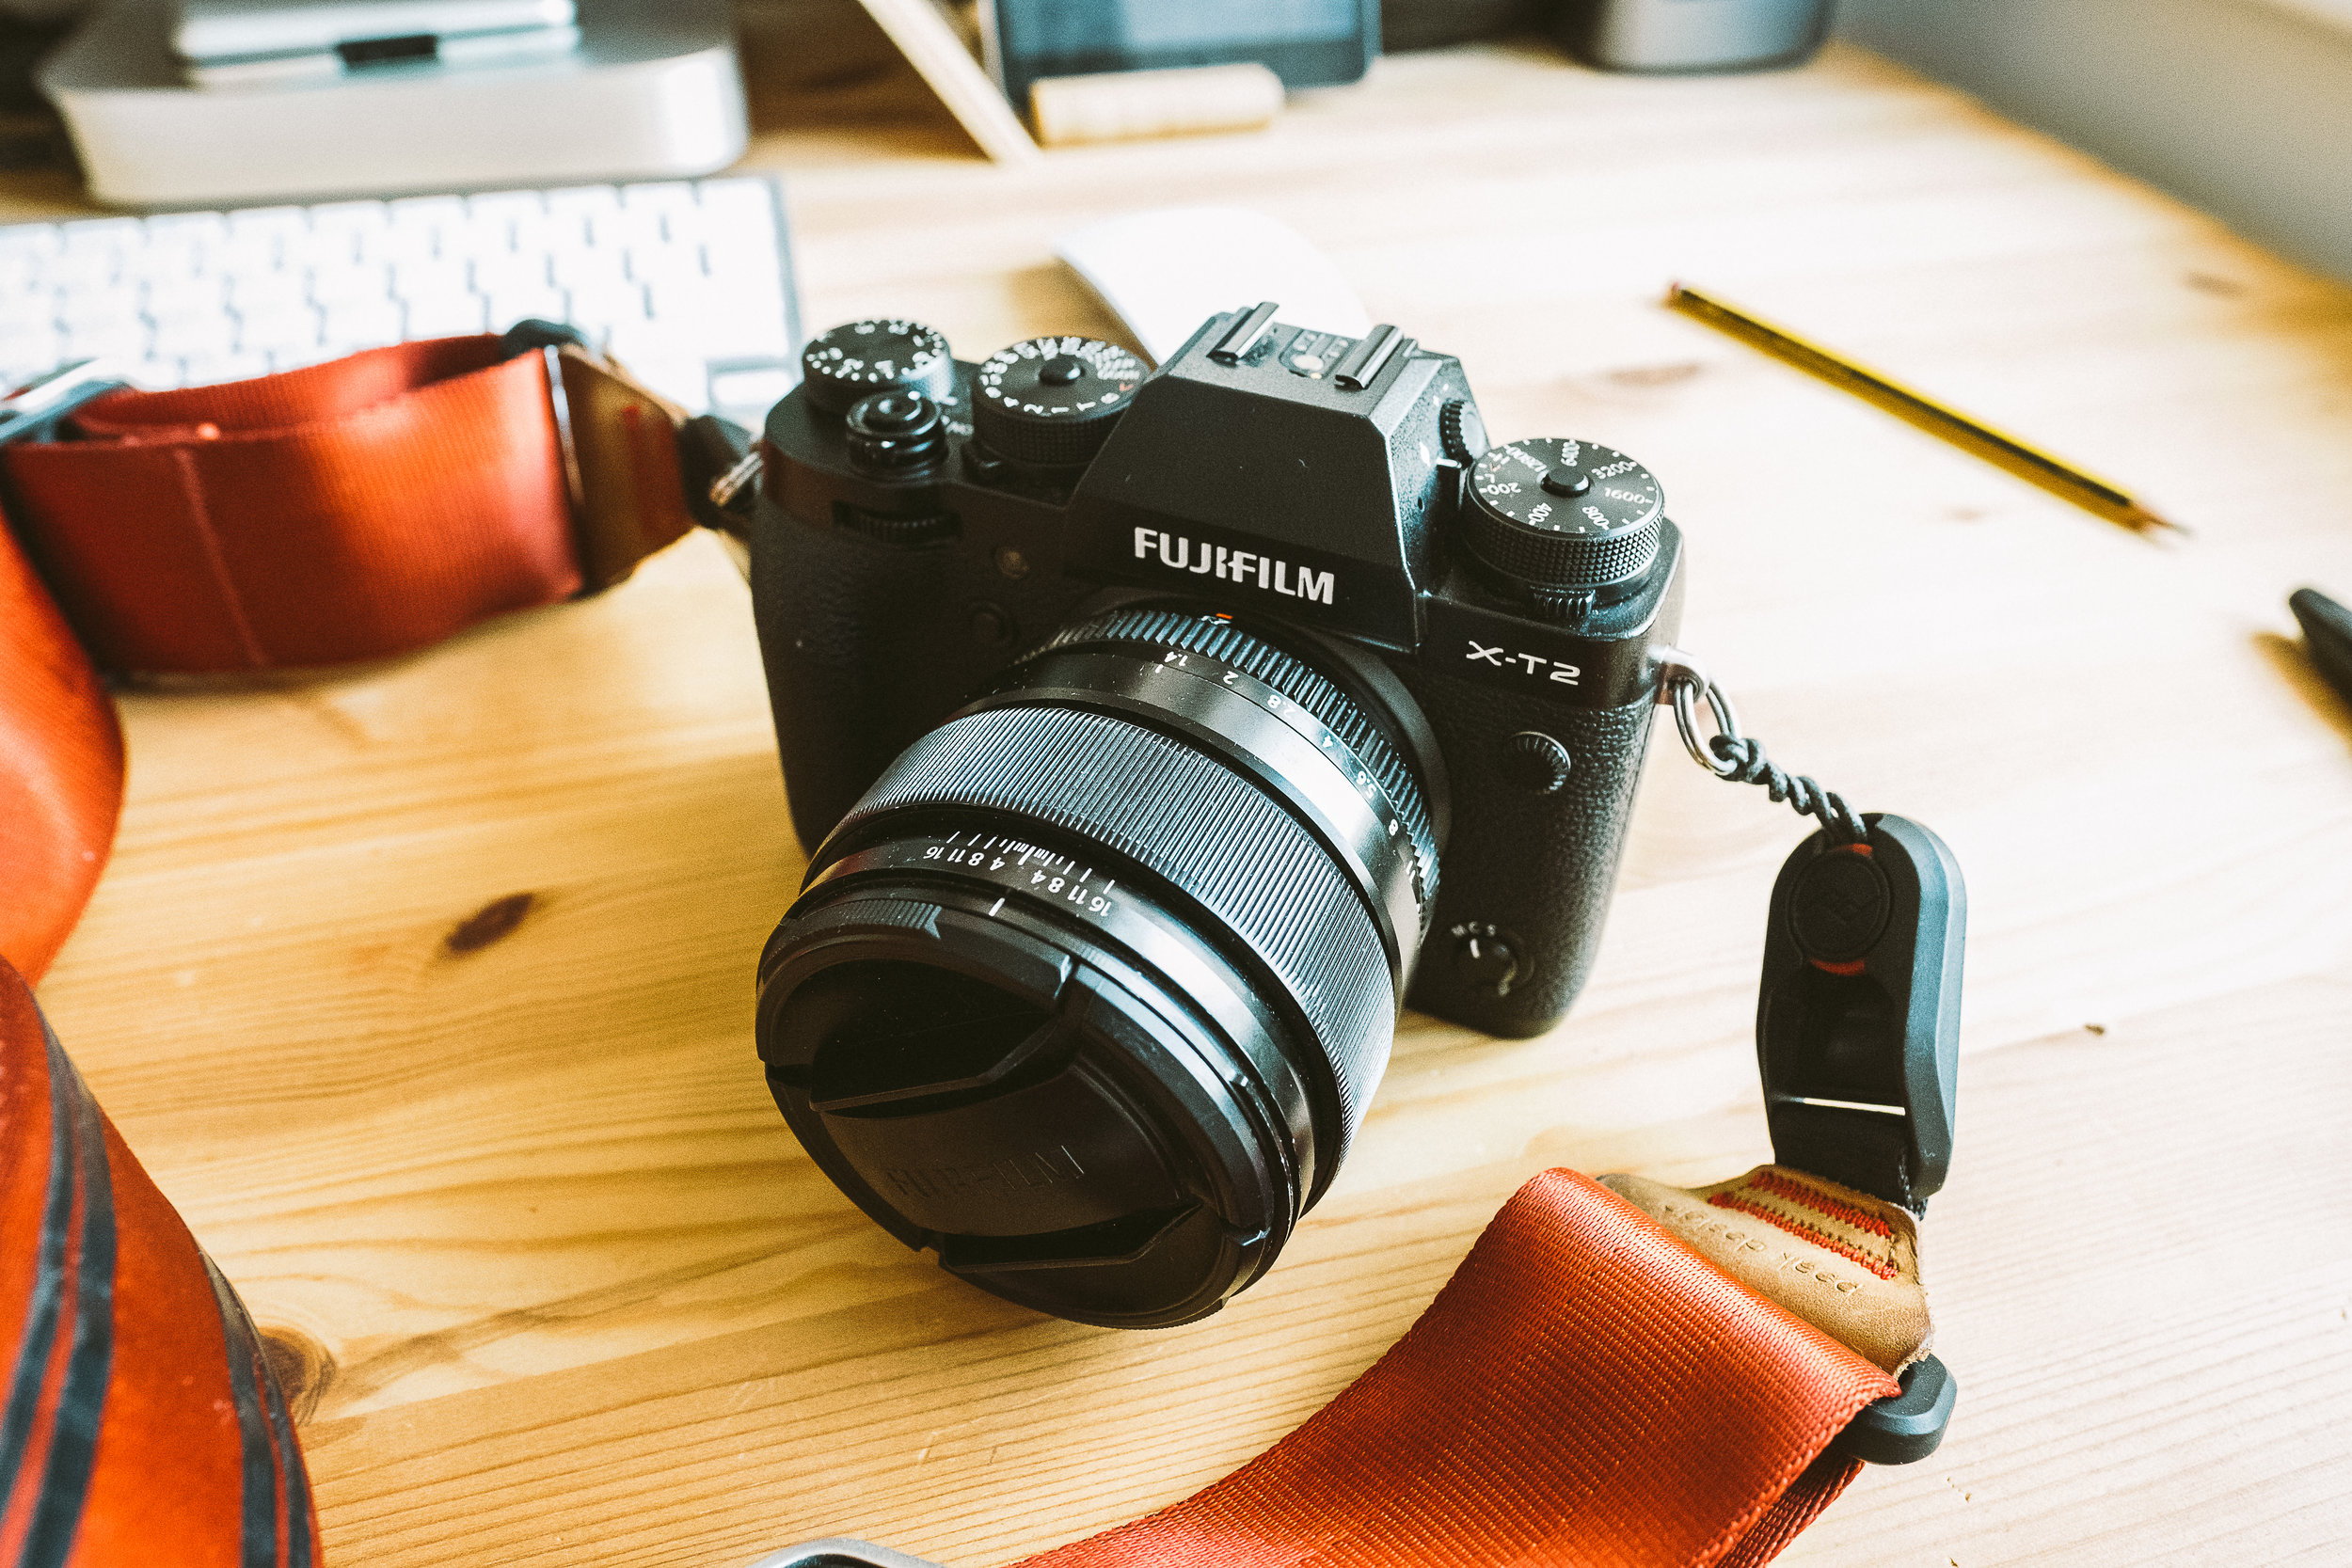 Fuji XT2 For video and film